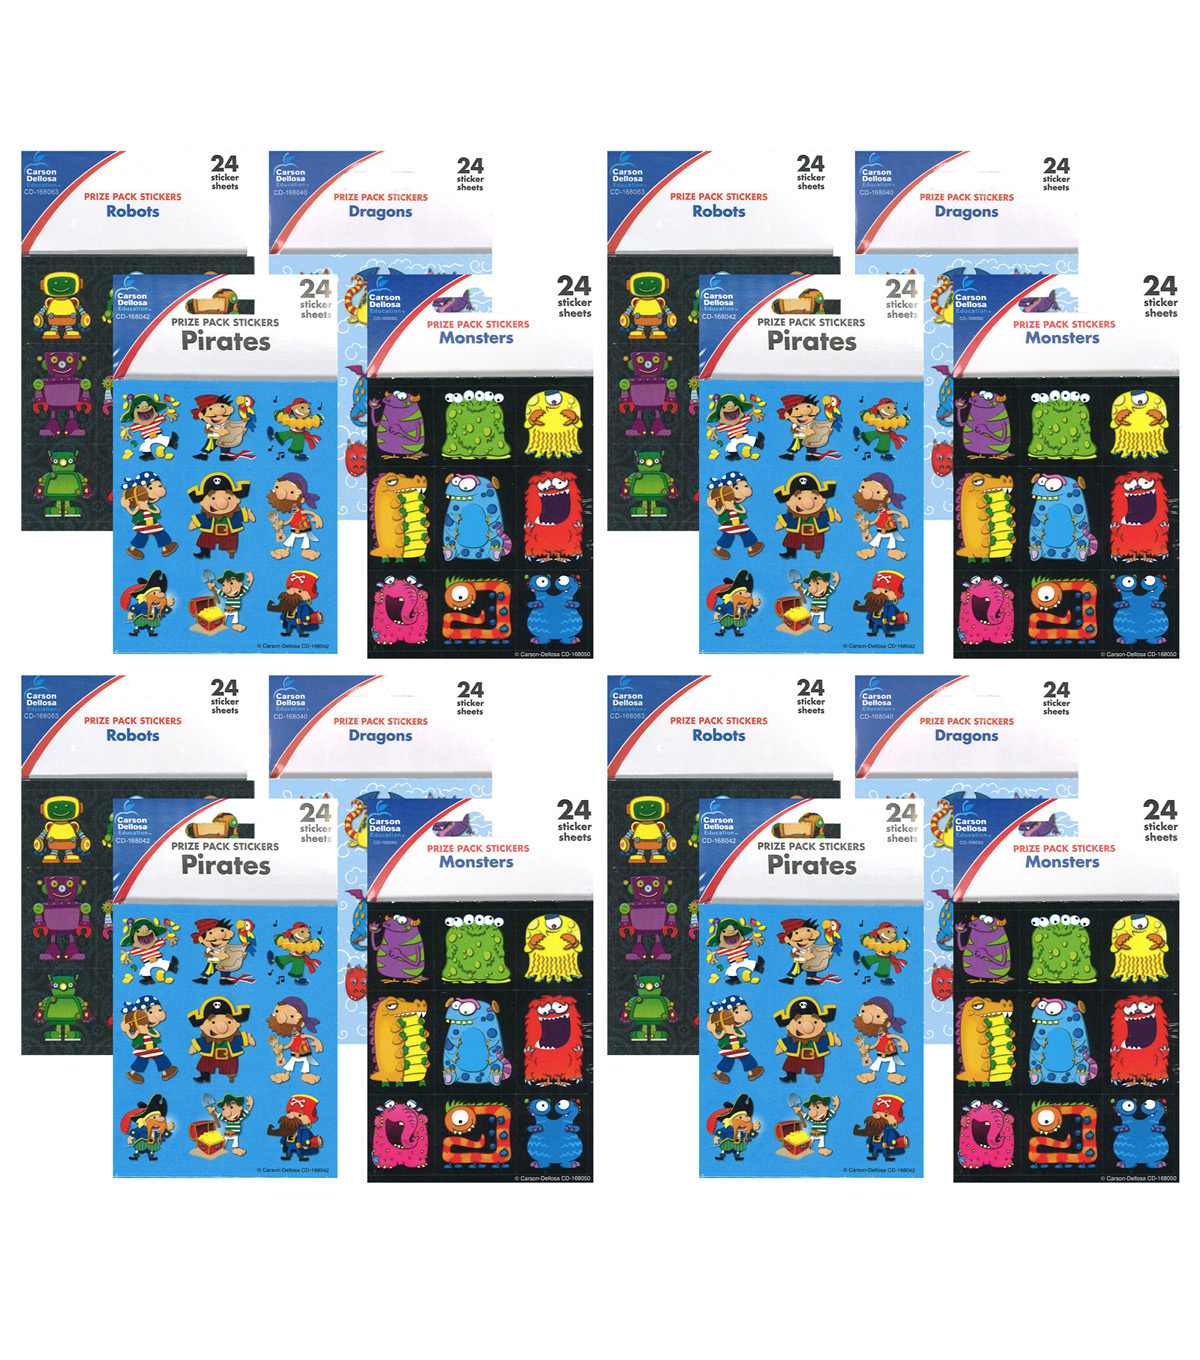 Carson Dellosa Boys Prize Pack Sticker Set 4 Packs